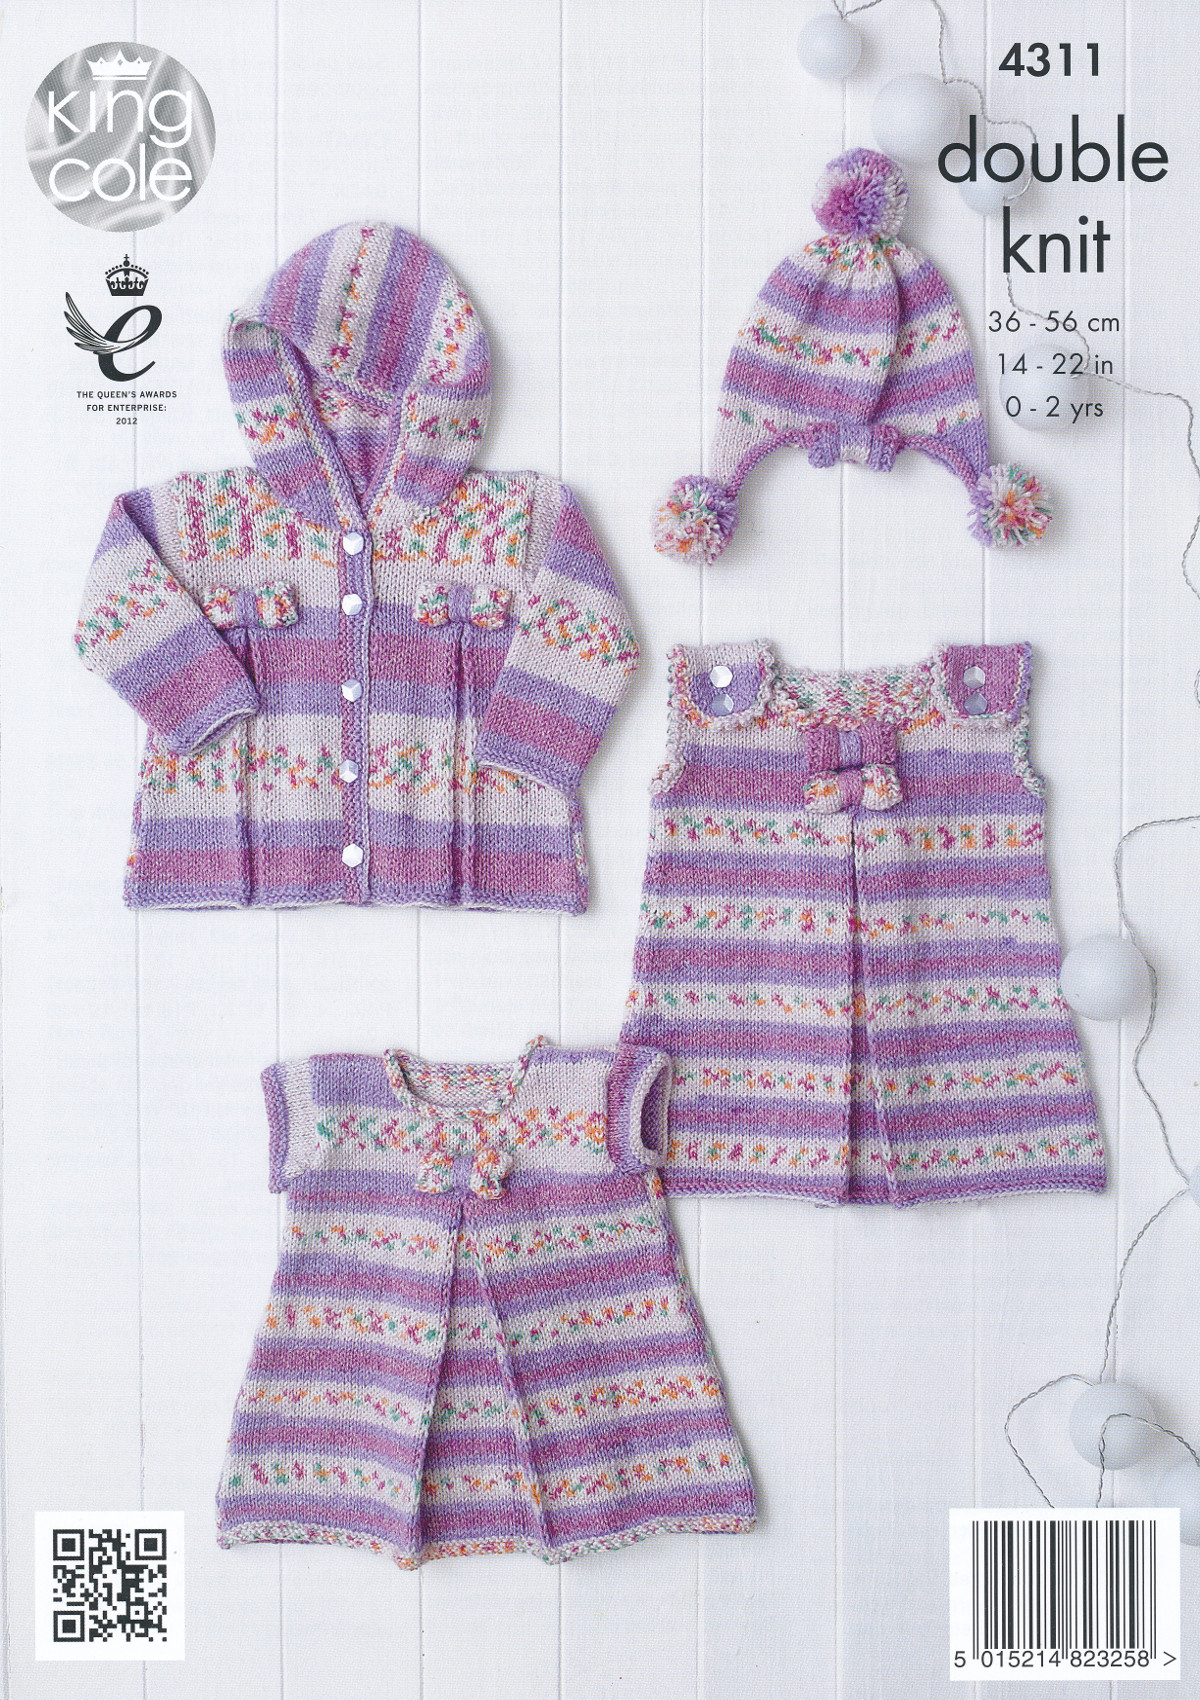 Knitting Patterns For Babies Double Knitting : King Cole Double Knitting Pattern Dress Tunic Coat Hat Set Baby Drifter DK 43...